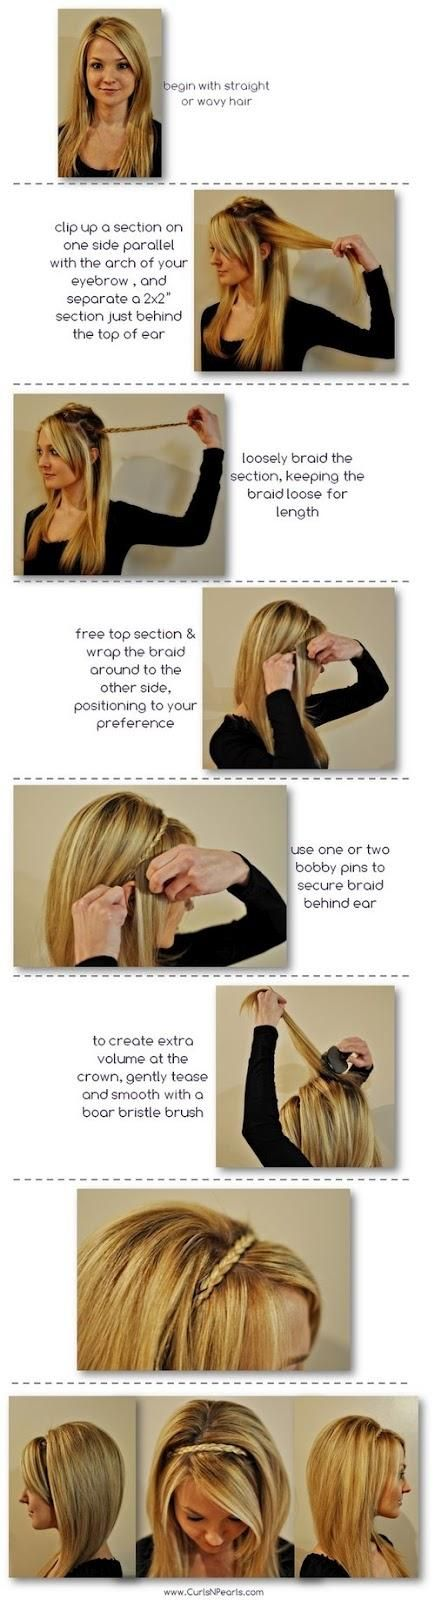 Hairband tutorial